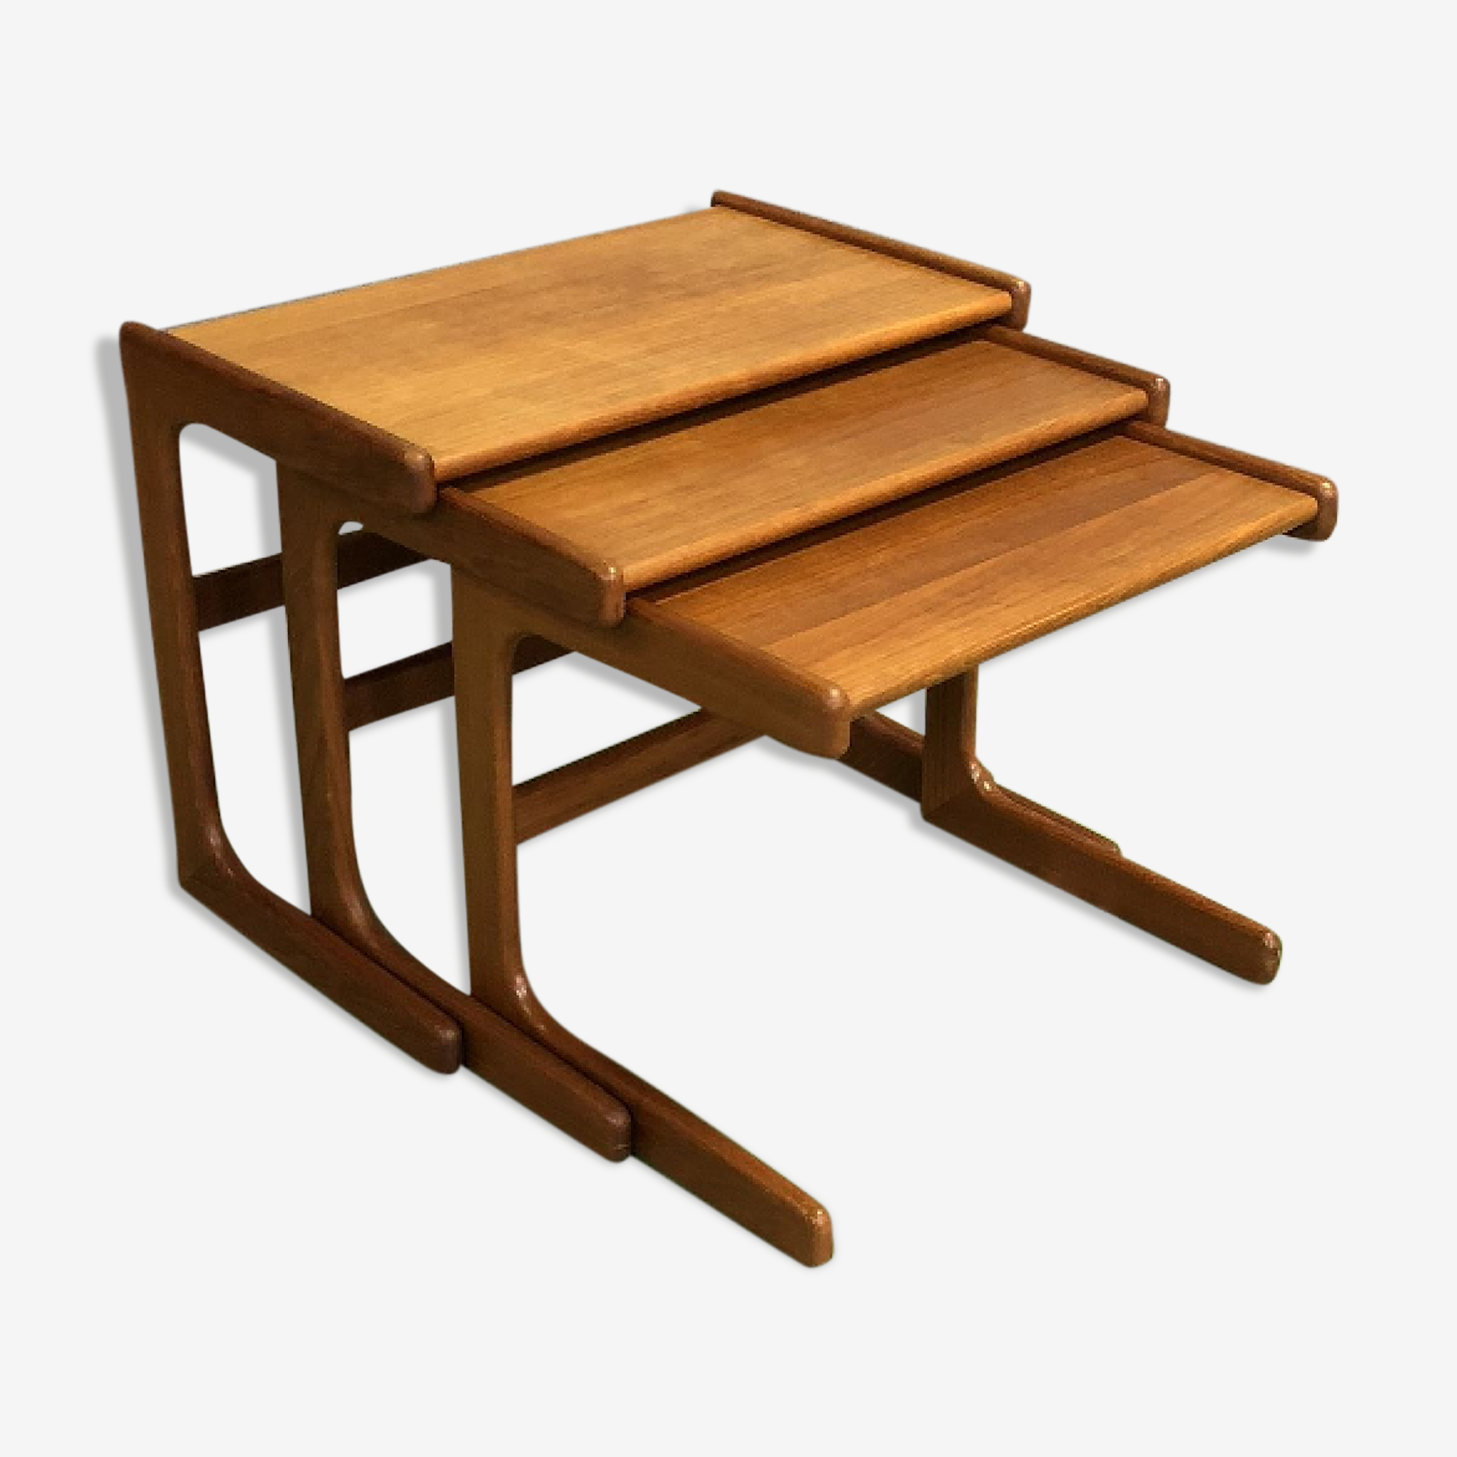 70s teak pull-out tables